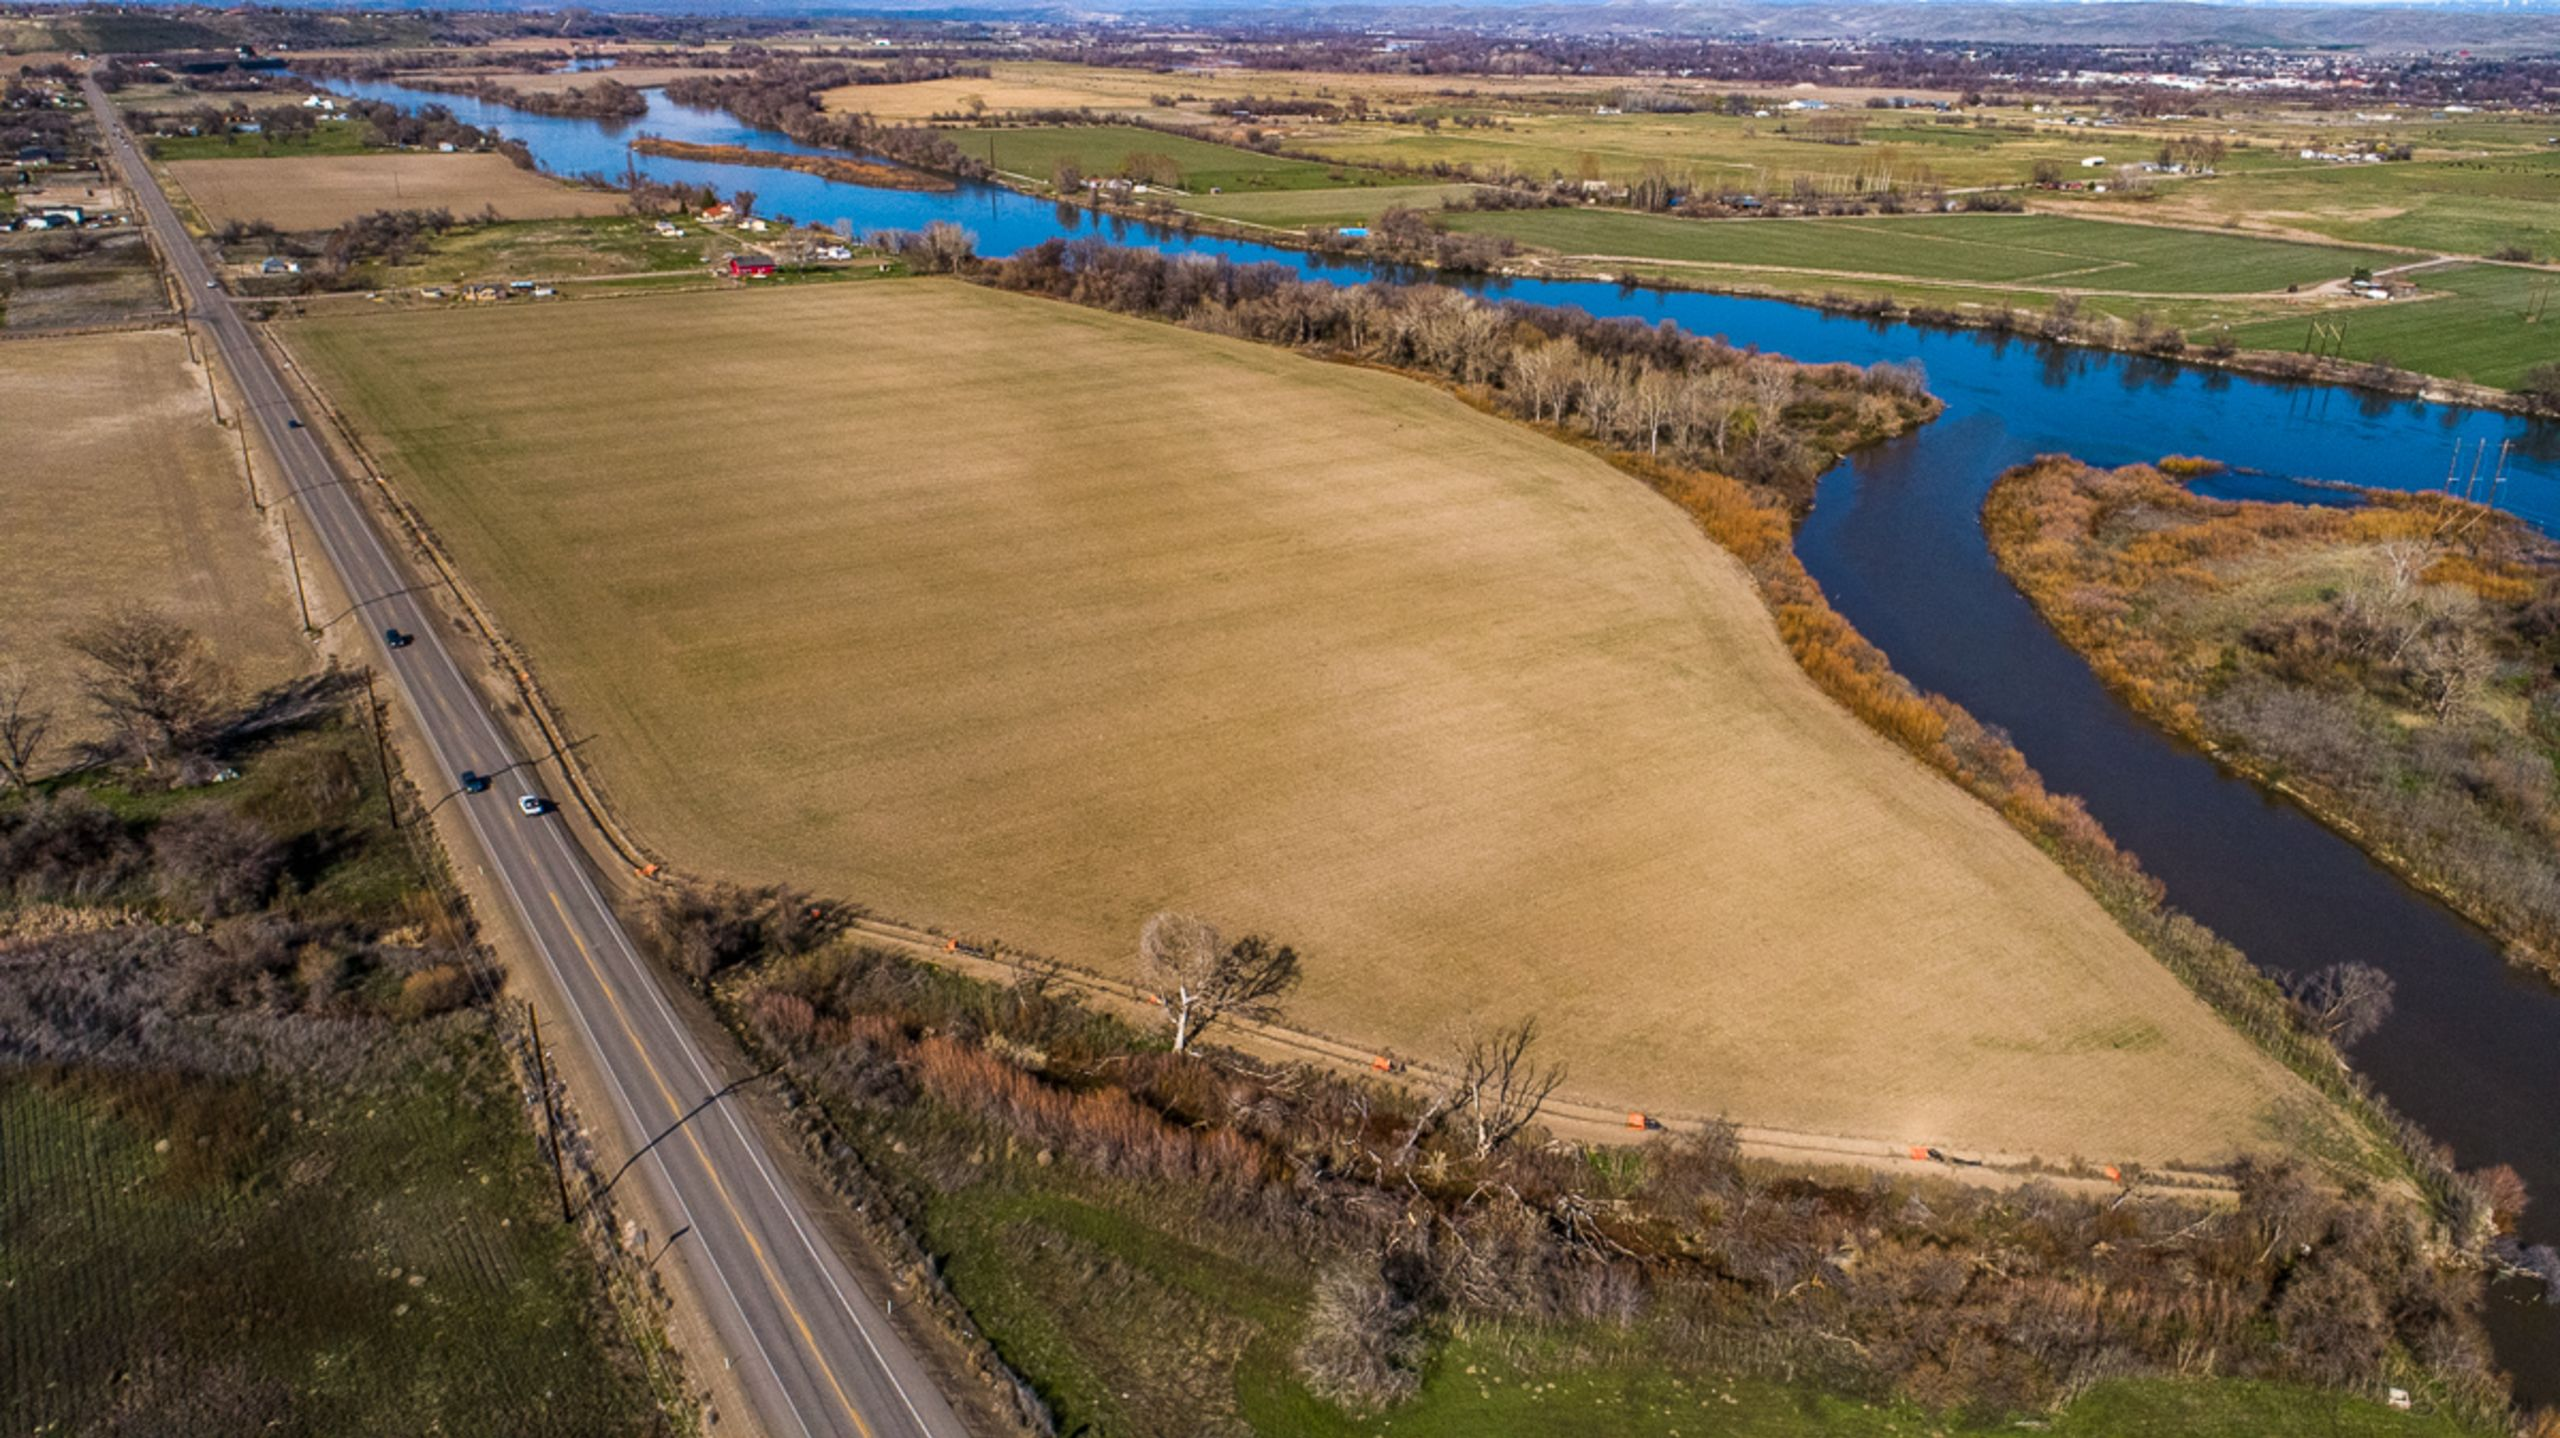 39 Acres on the river